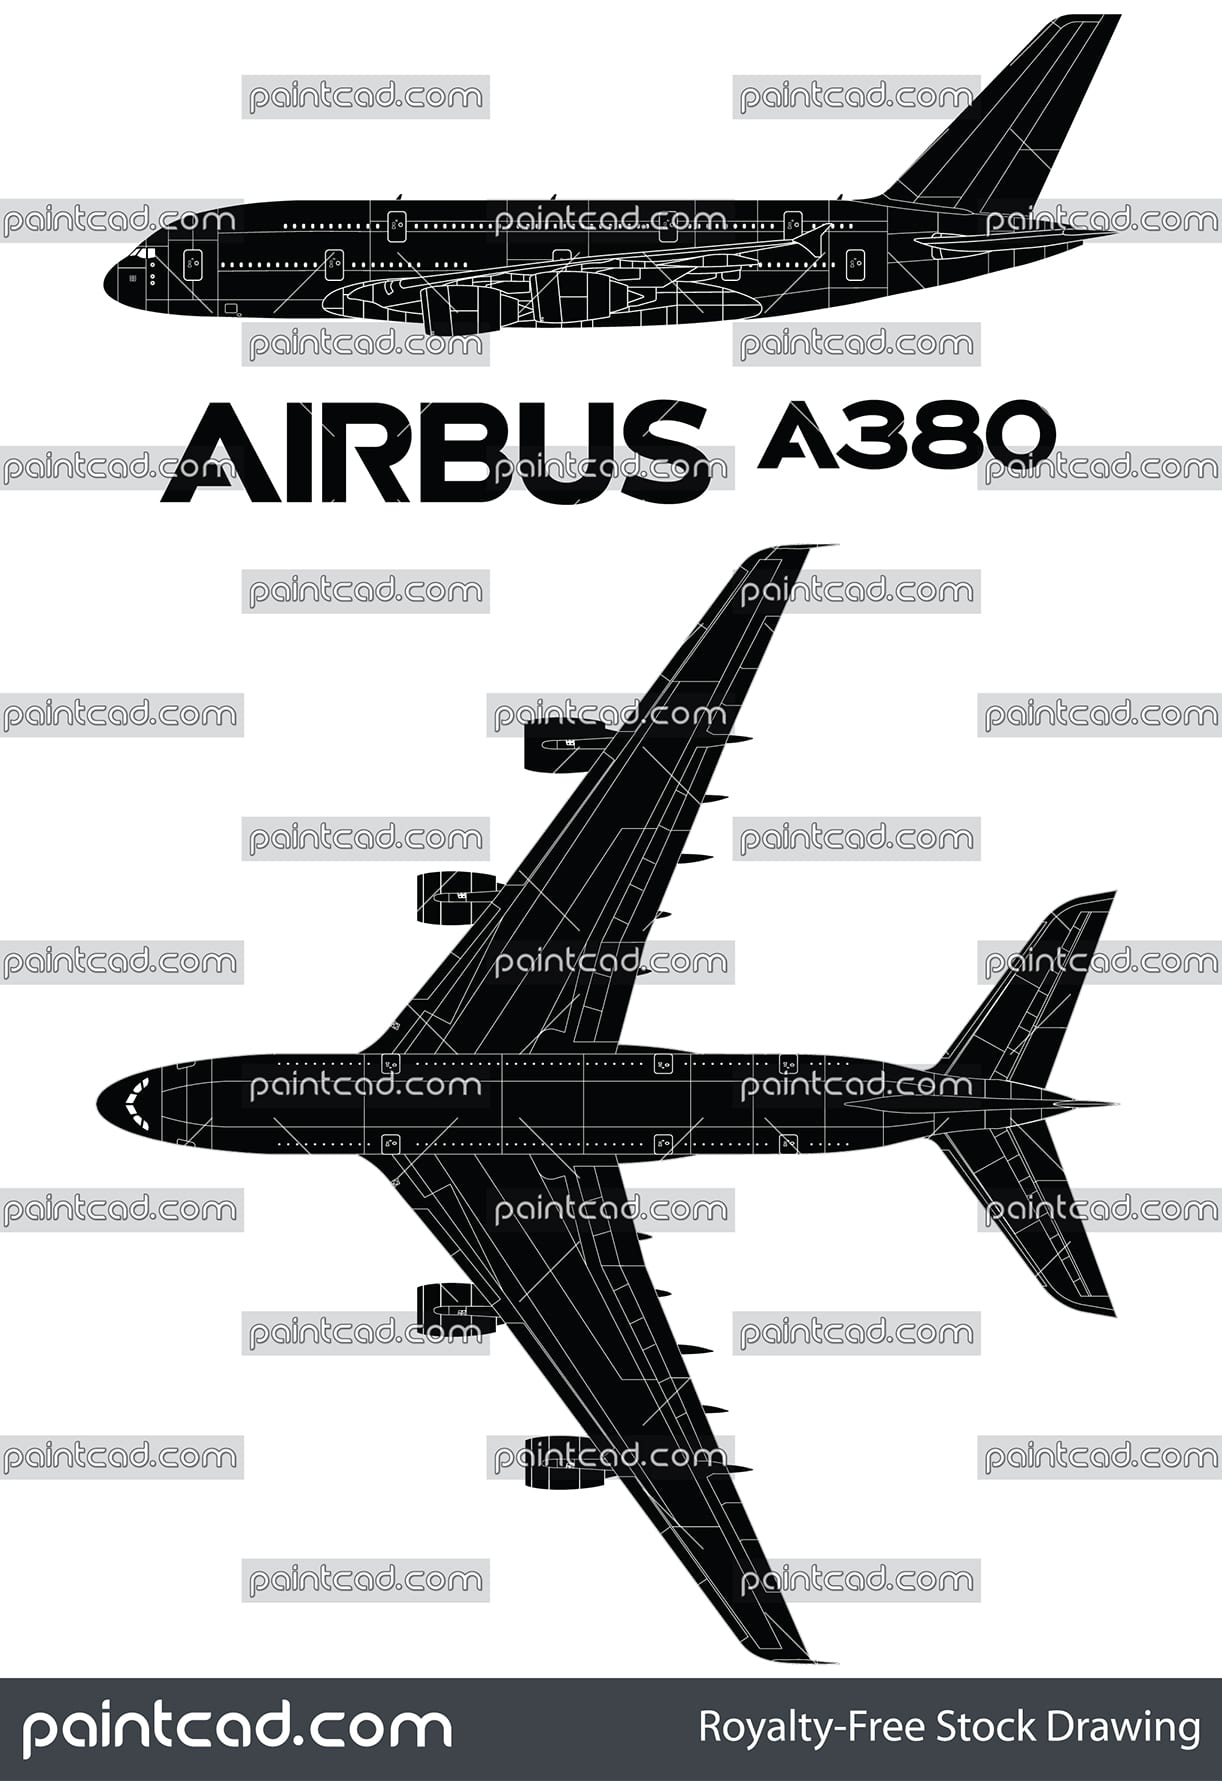 Quality vector icon with huge passenger airplane Airbus A380 - vector illustration